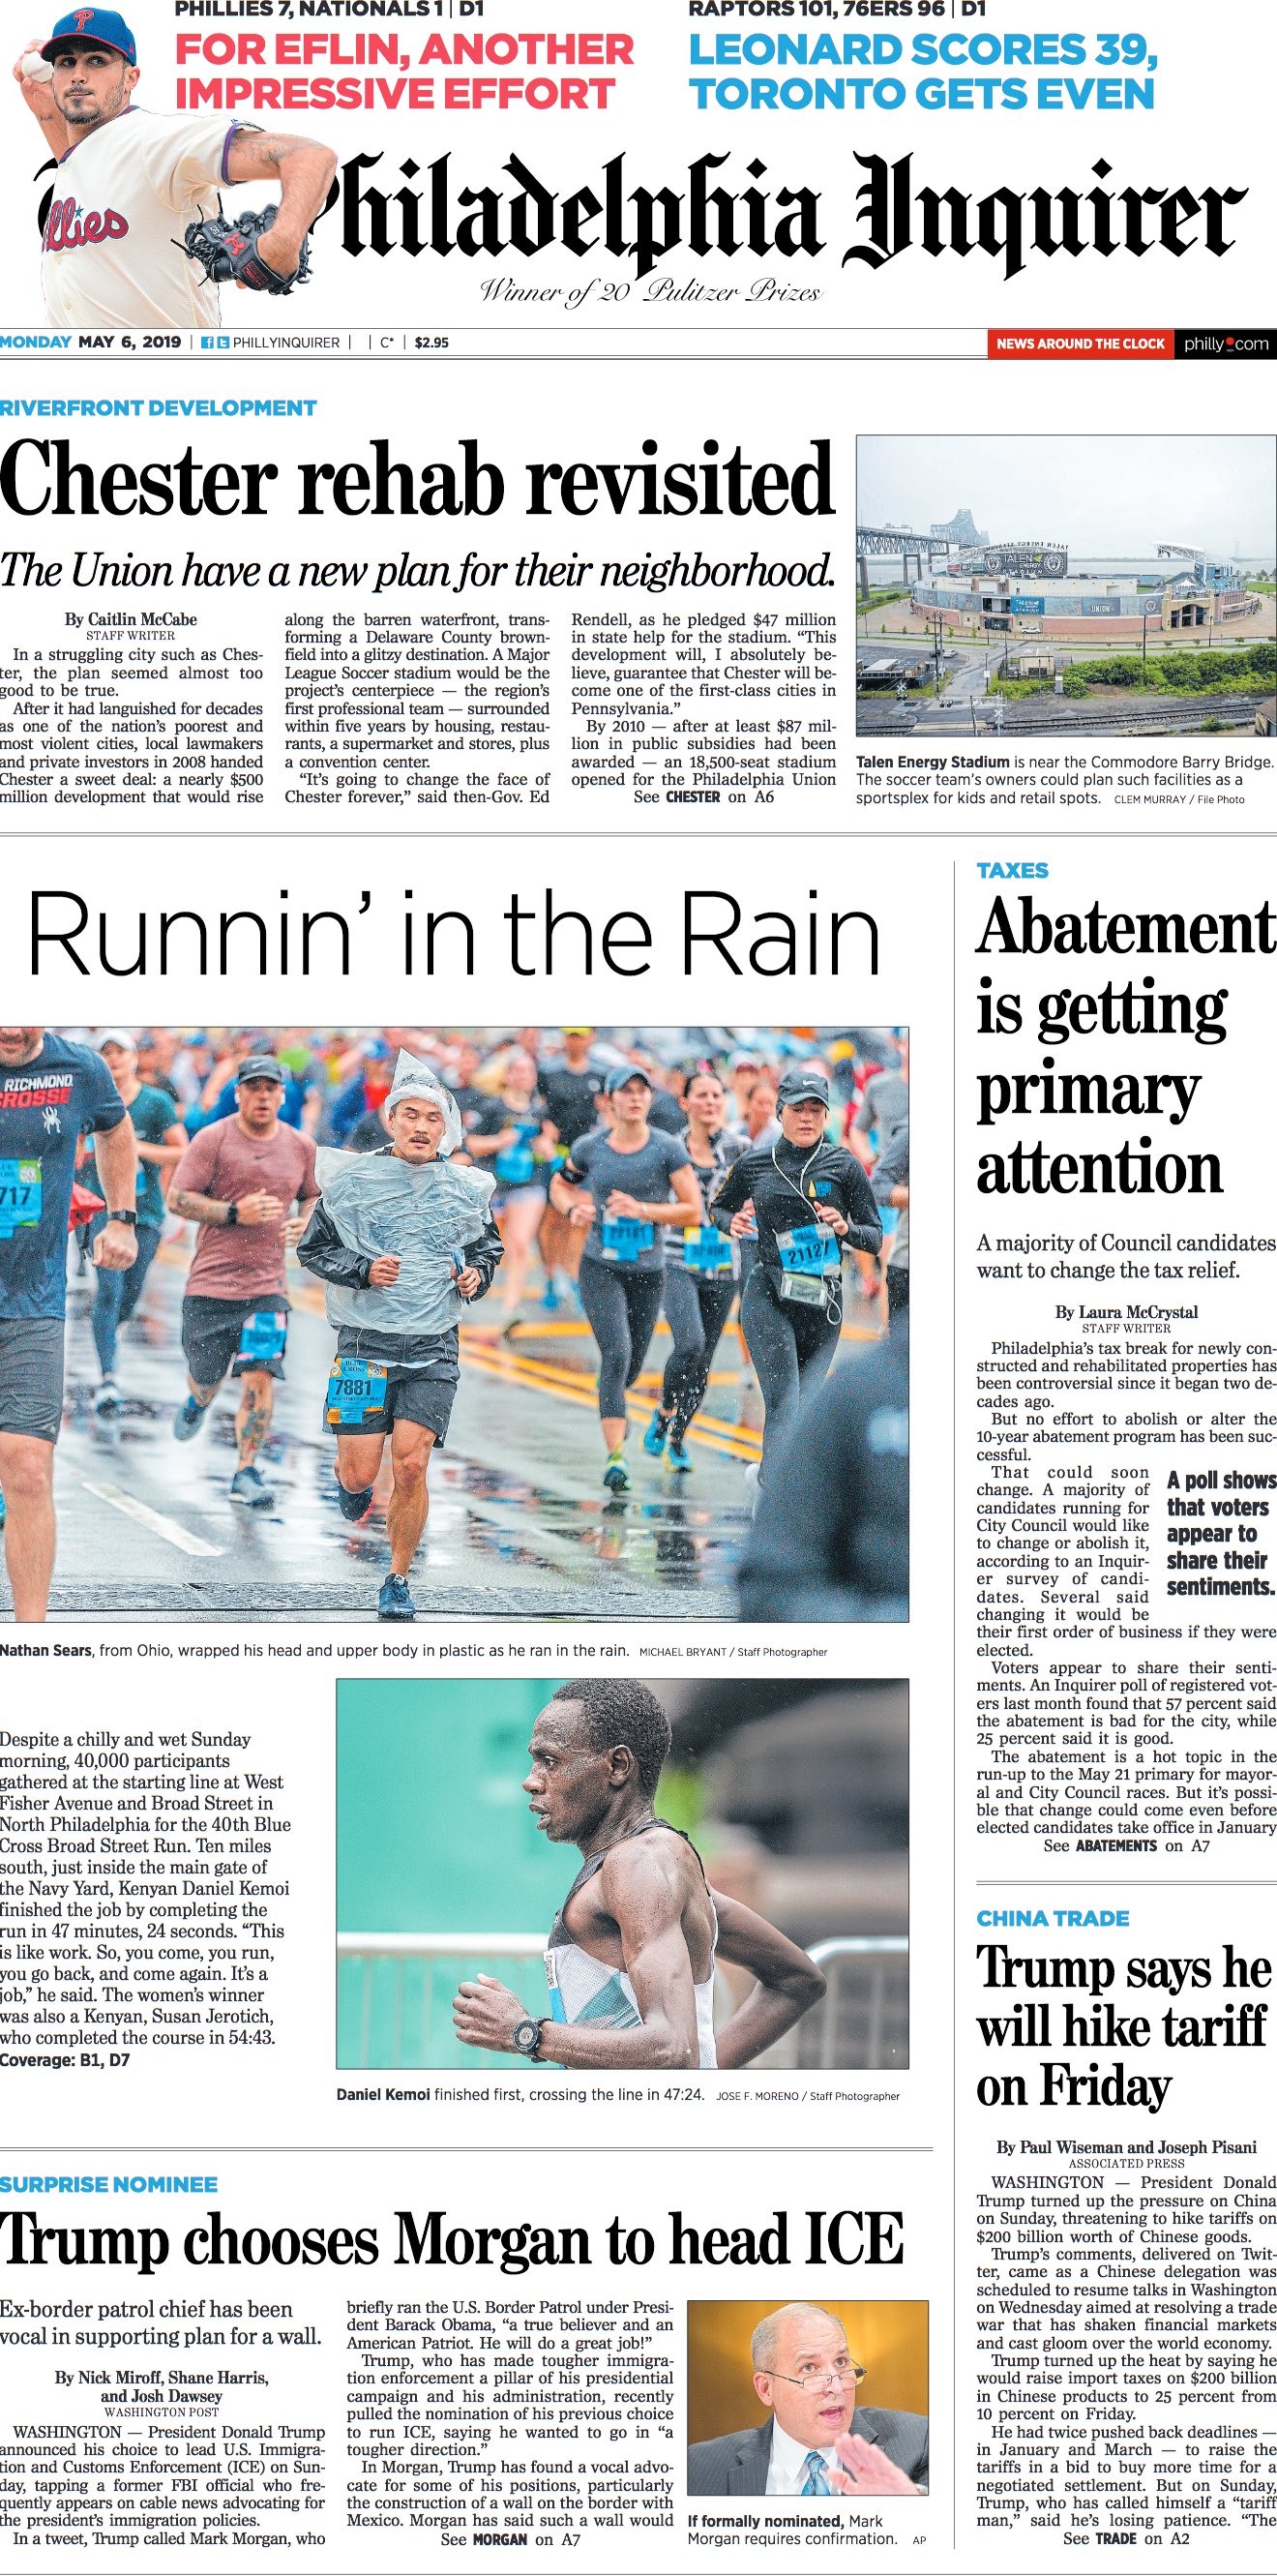 PhiladelphiaInquirer_FrontPage_050619.png